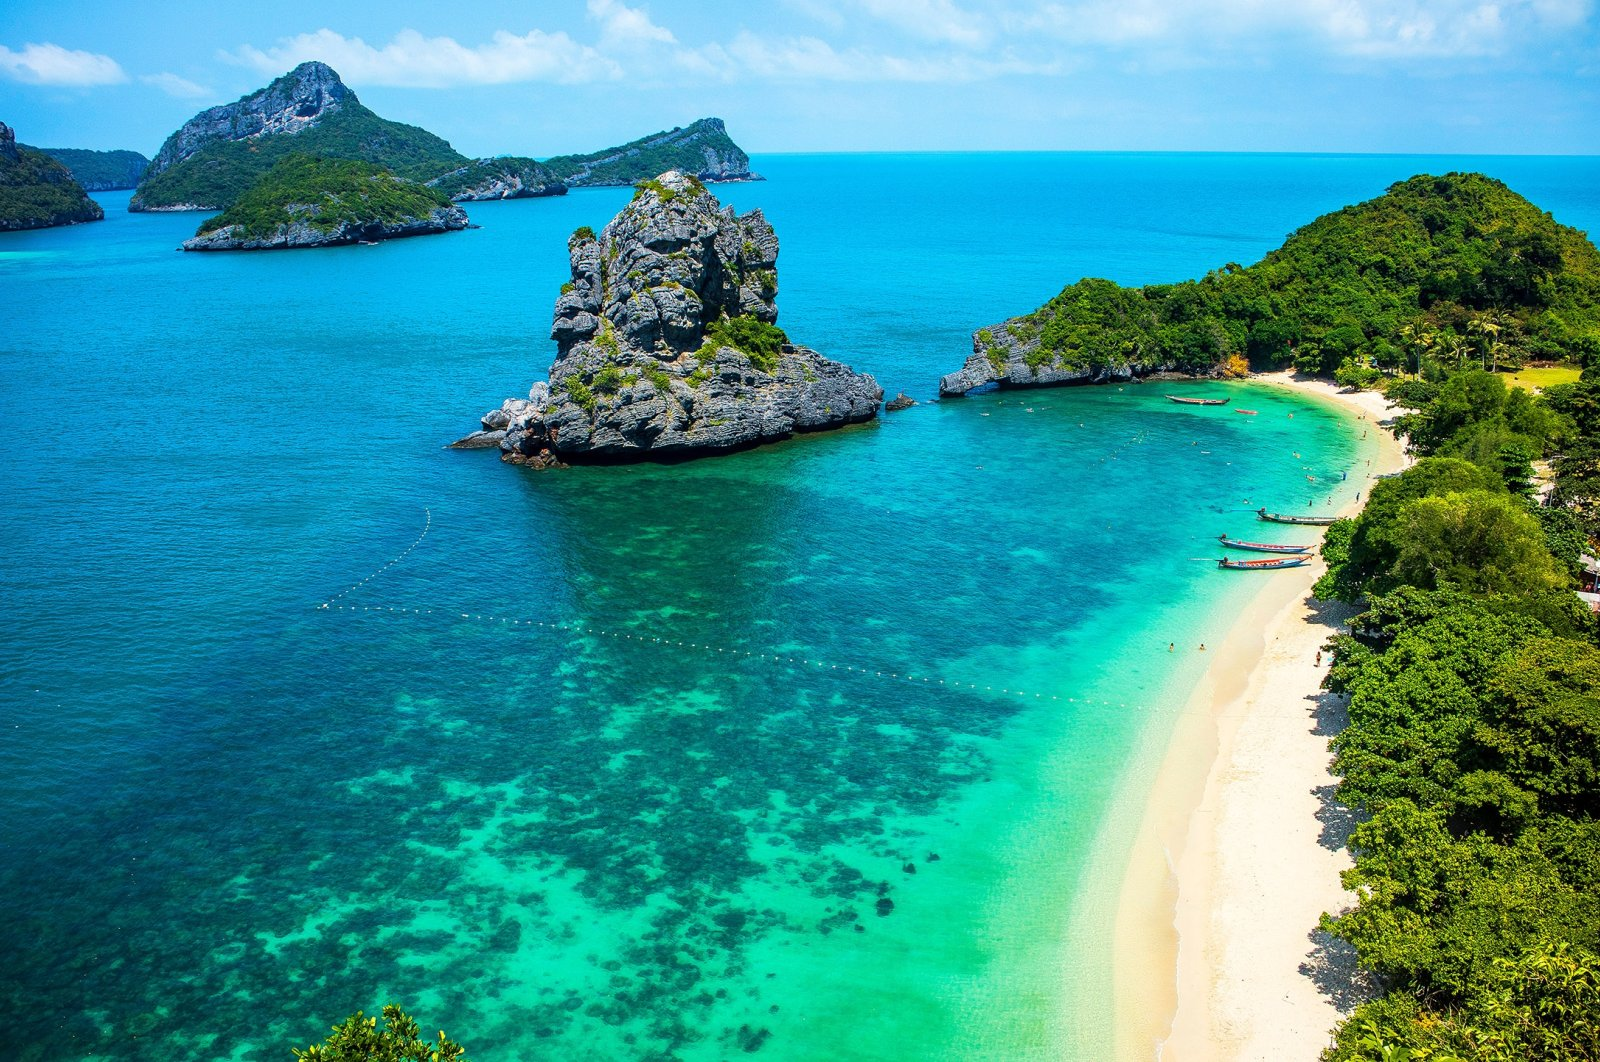 Results of Phuket's vacation model support plans to reopen Thailand. (Shutterstock Photo)